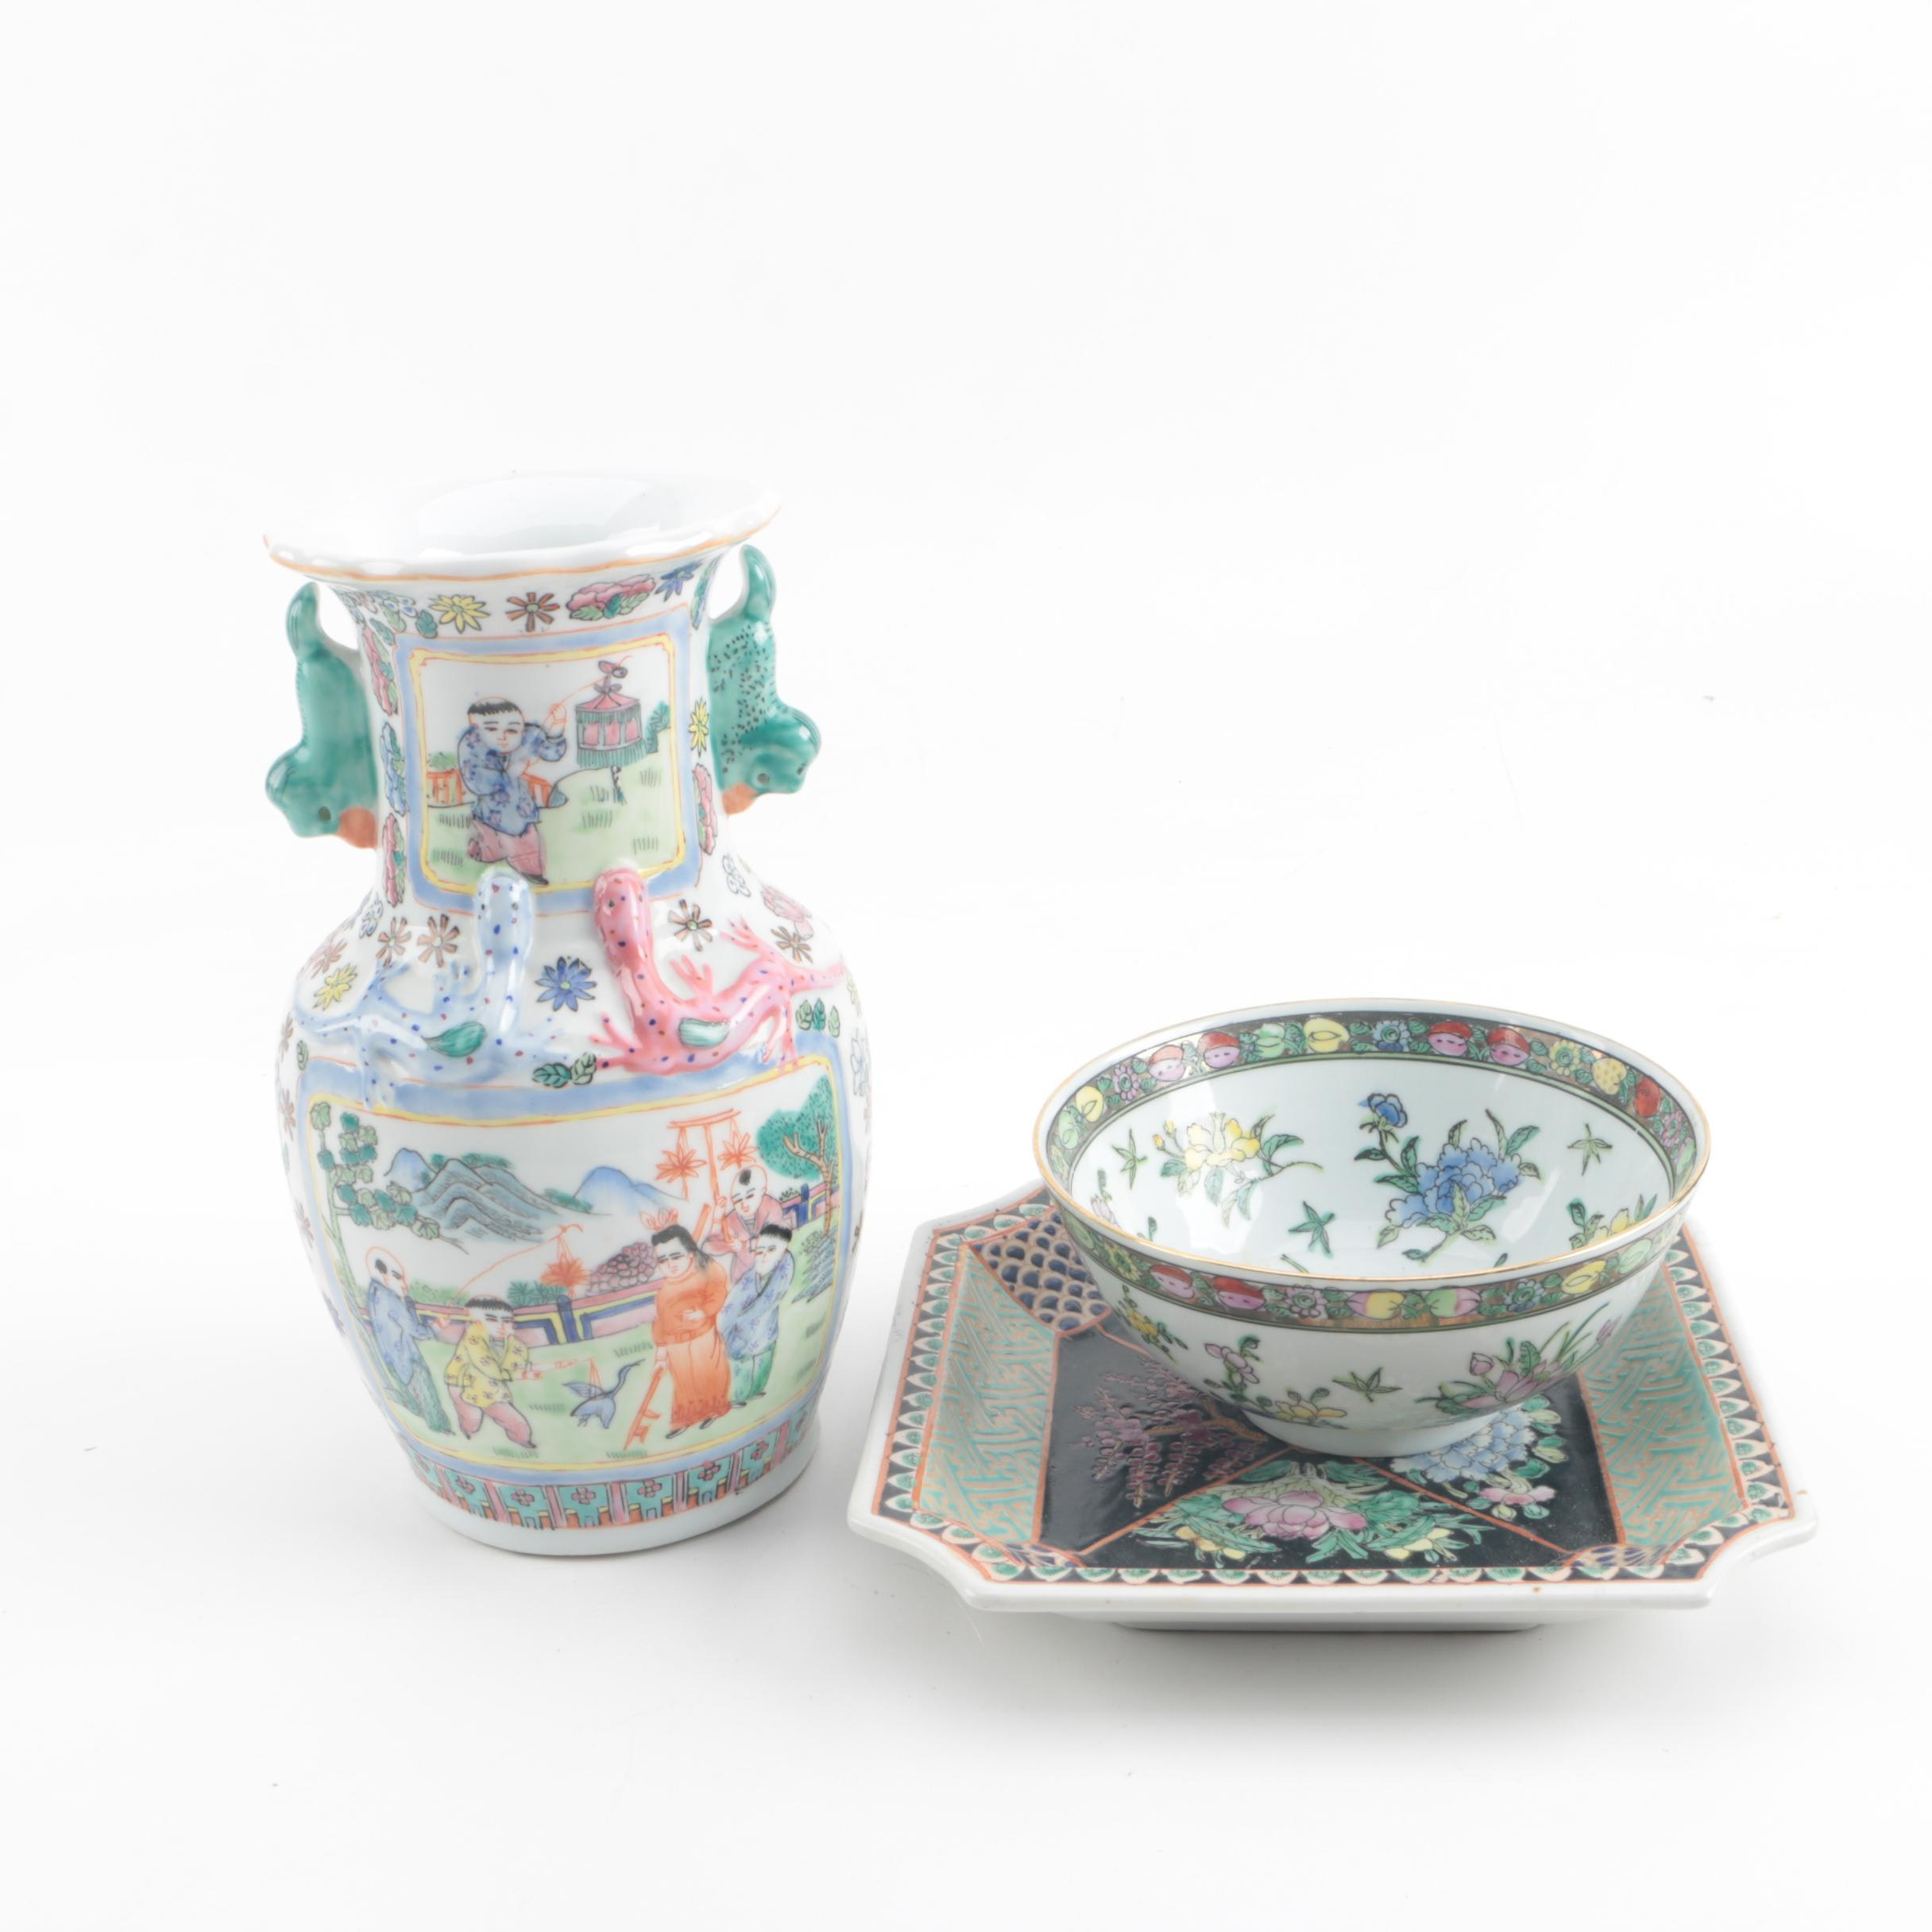 Contemporary Chinese Porcelain Vase and Decor